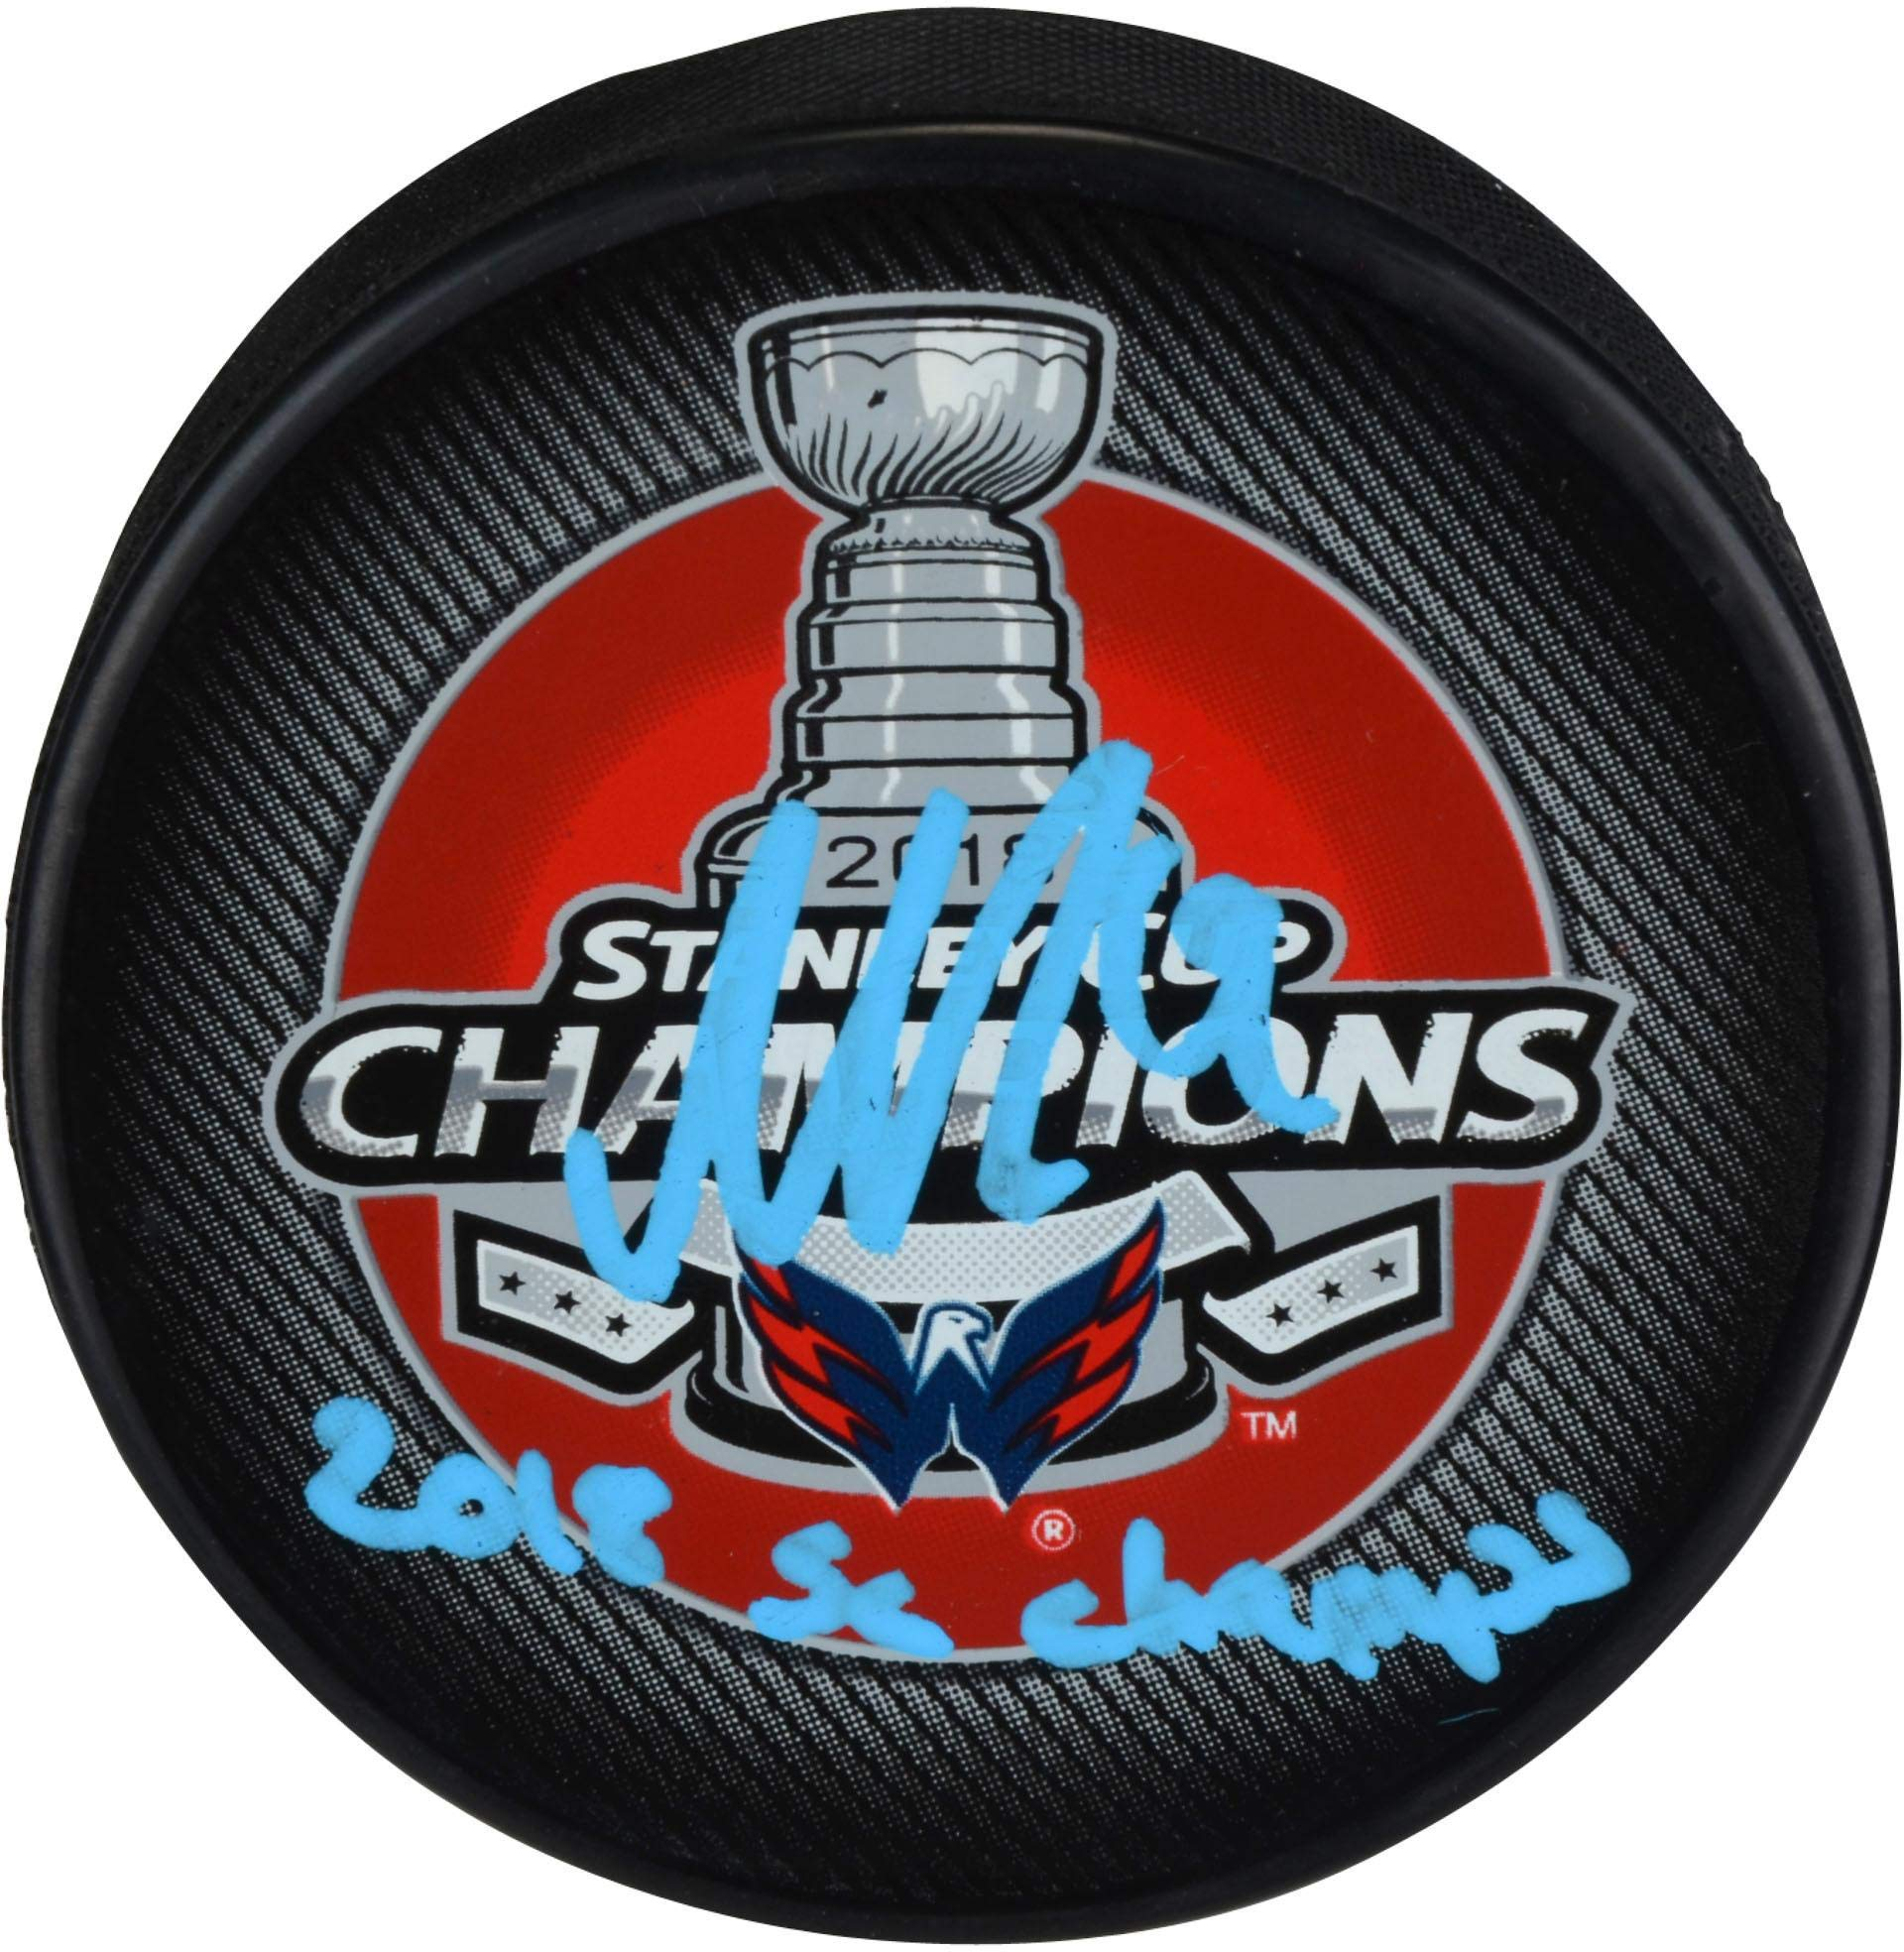 Nicklas Backstrom Washington Capitals 2018 Stanley Cup Champions Autographed Stanley Cup Champions Logo Hockey Puck with 2018 SC Champs Inscription Fanatics Authentic Certified